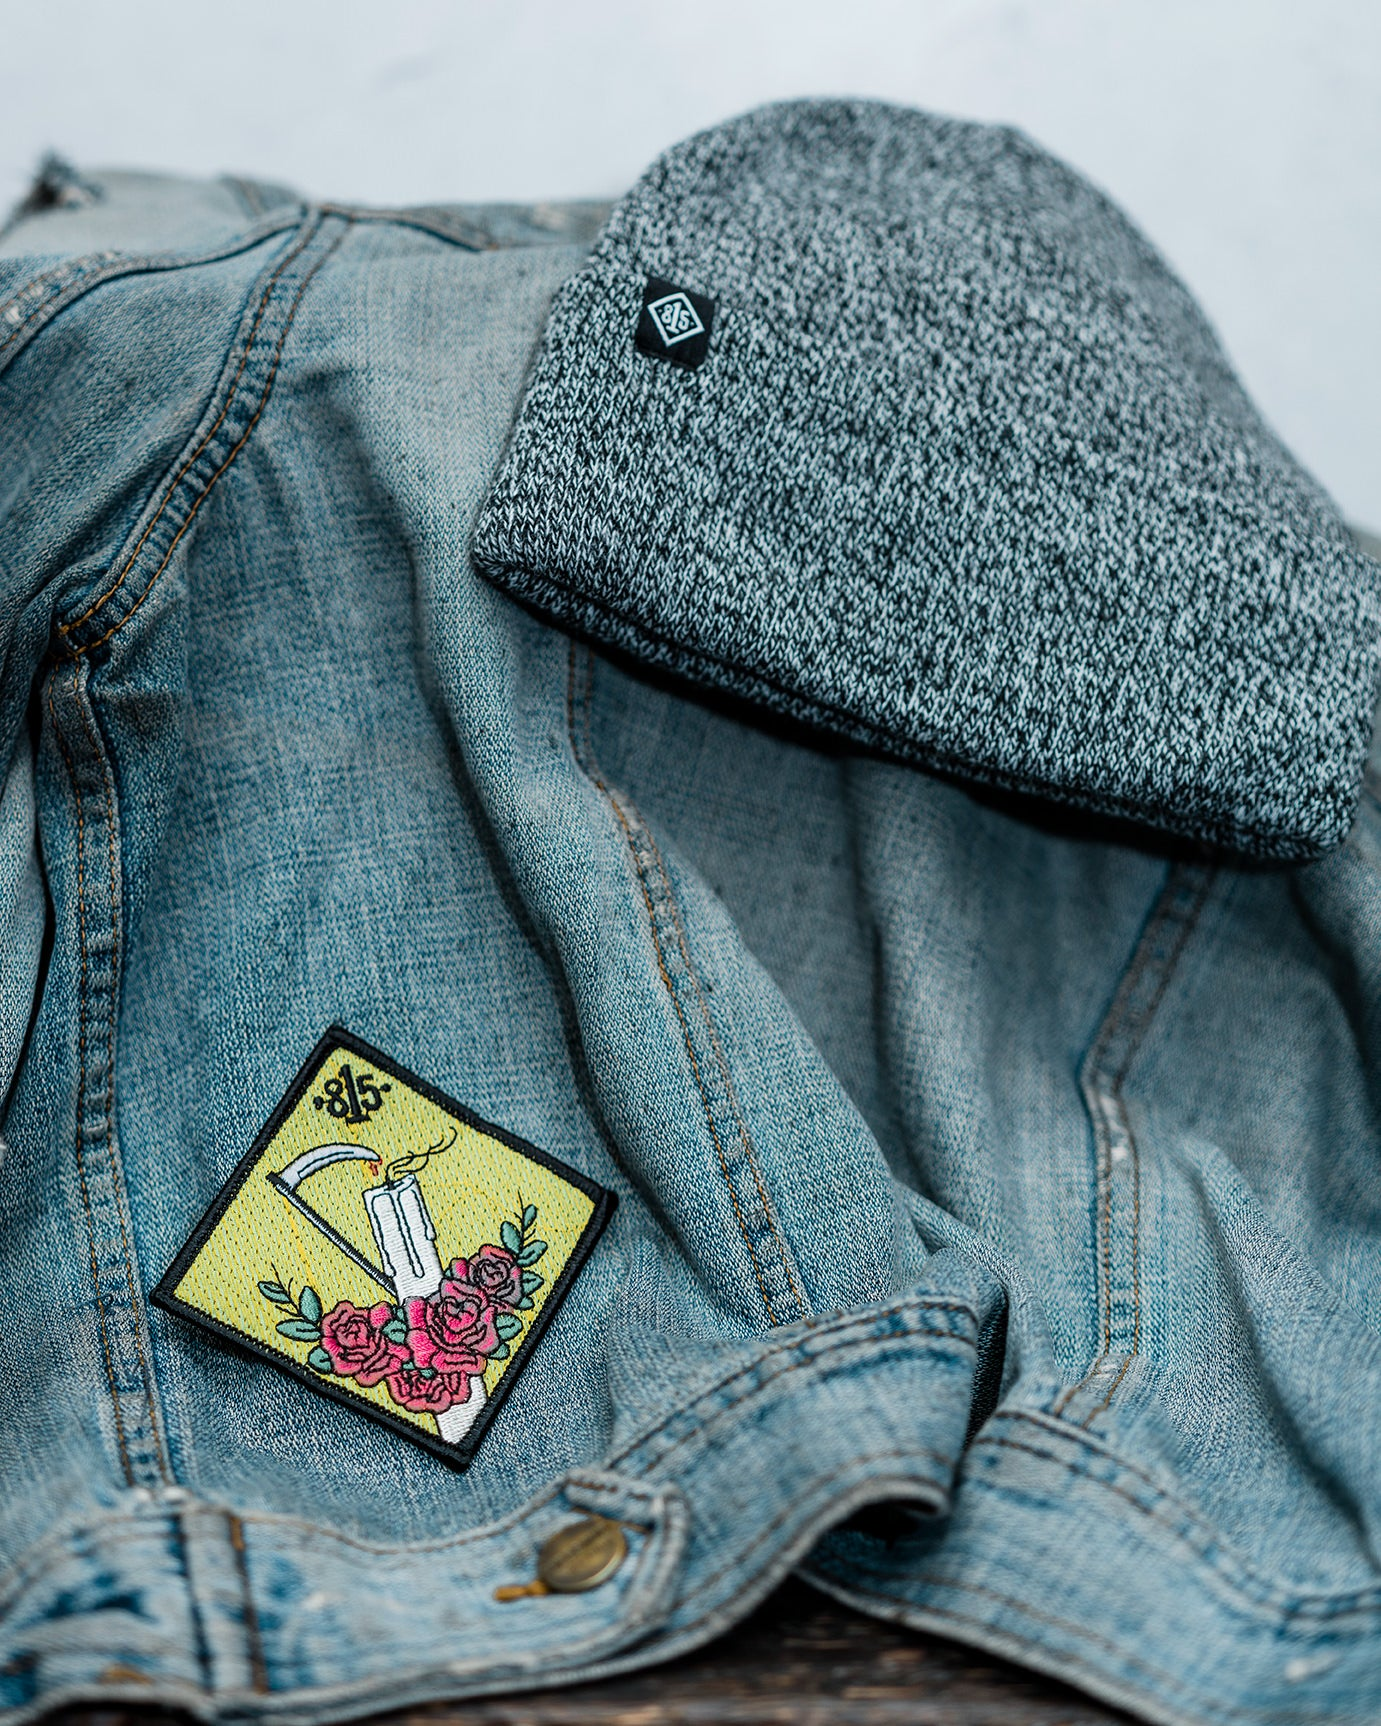 Diamond Candle Slayer Patch - Sickle - Candle - Roses - Denim Jacket - Beanie - Outfit